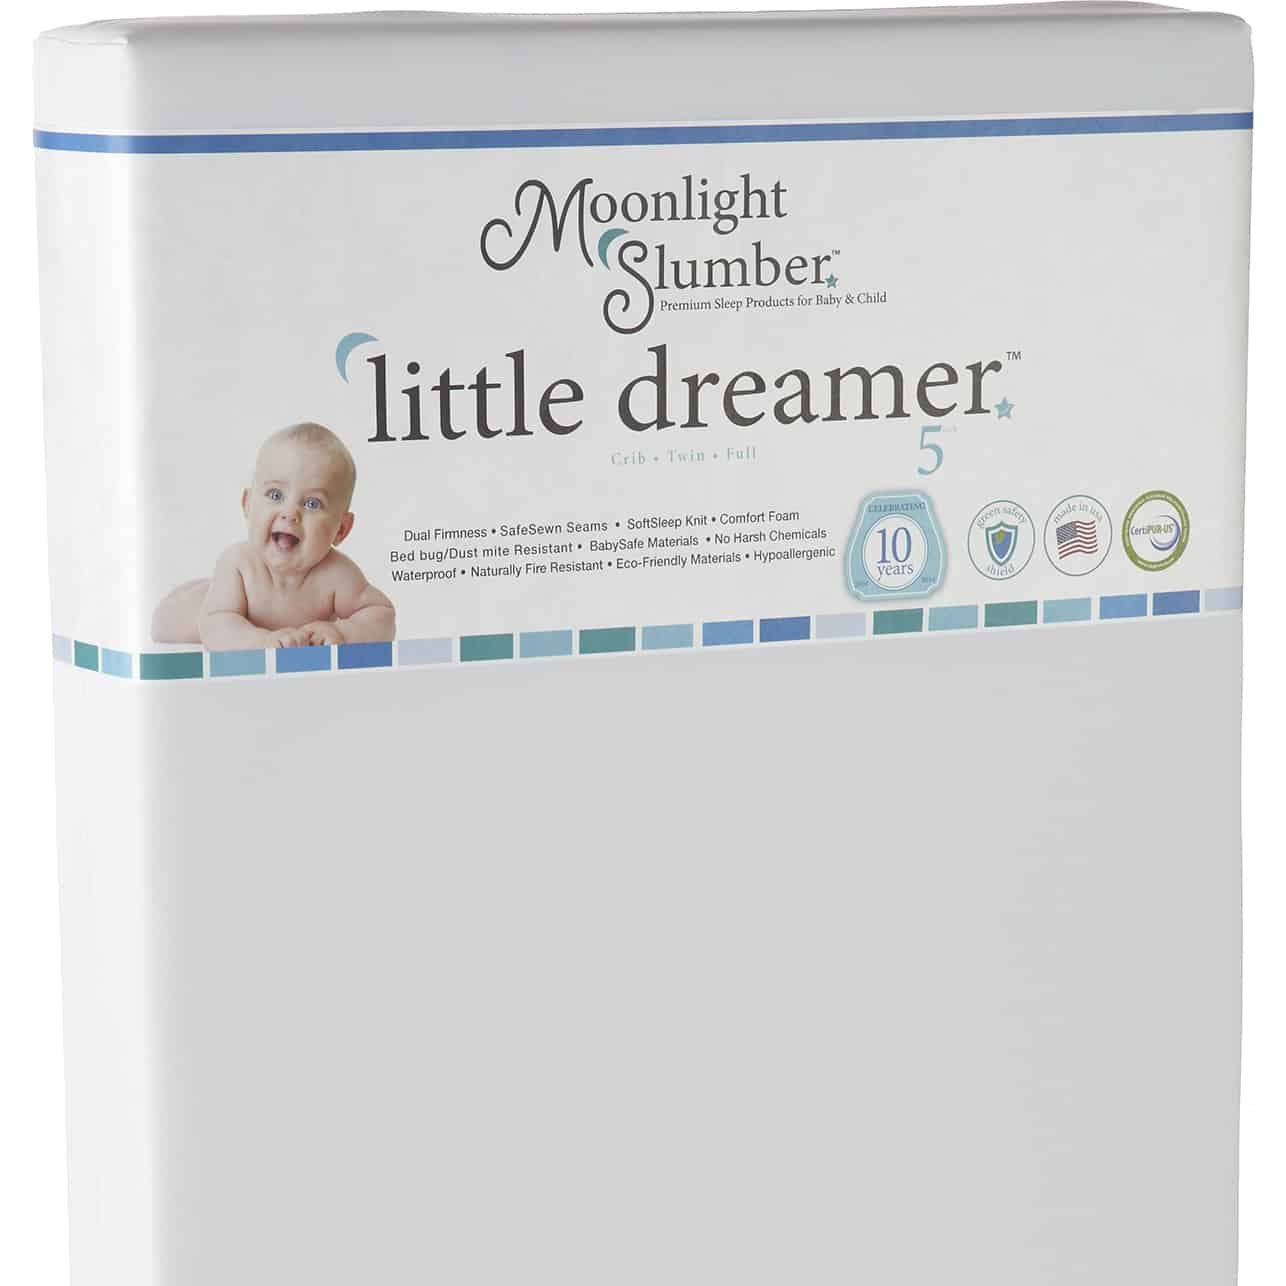 Best Baby Crib Mattress Little Dreamer Moonlight Slumber